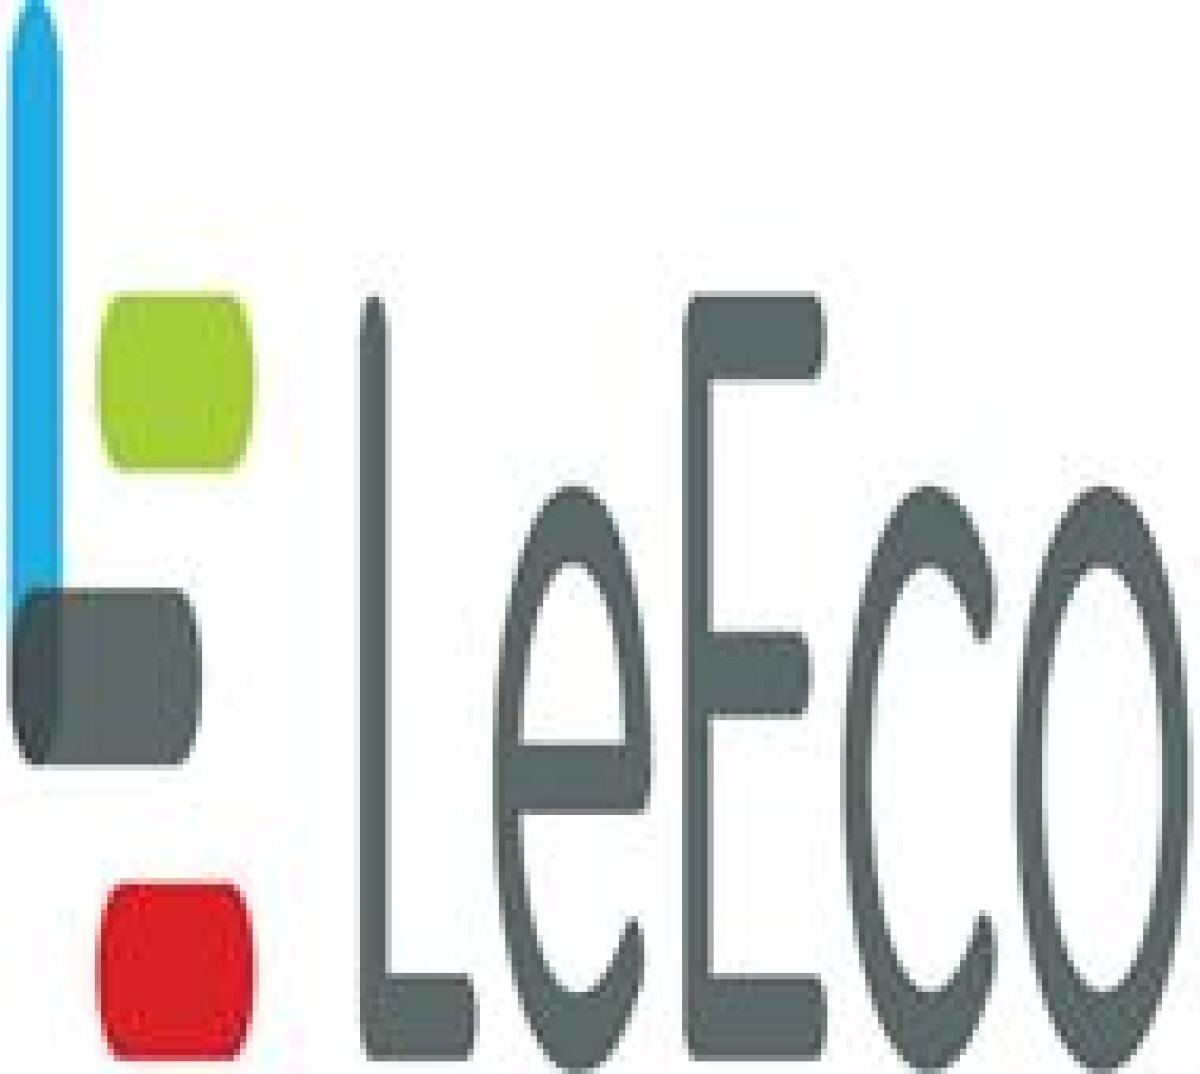 LeEco may launch e-commerce platform in India